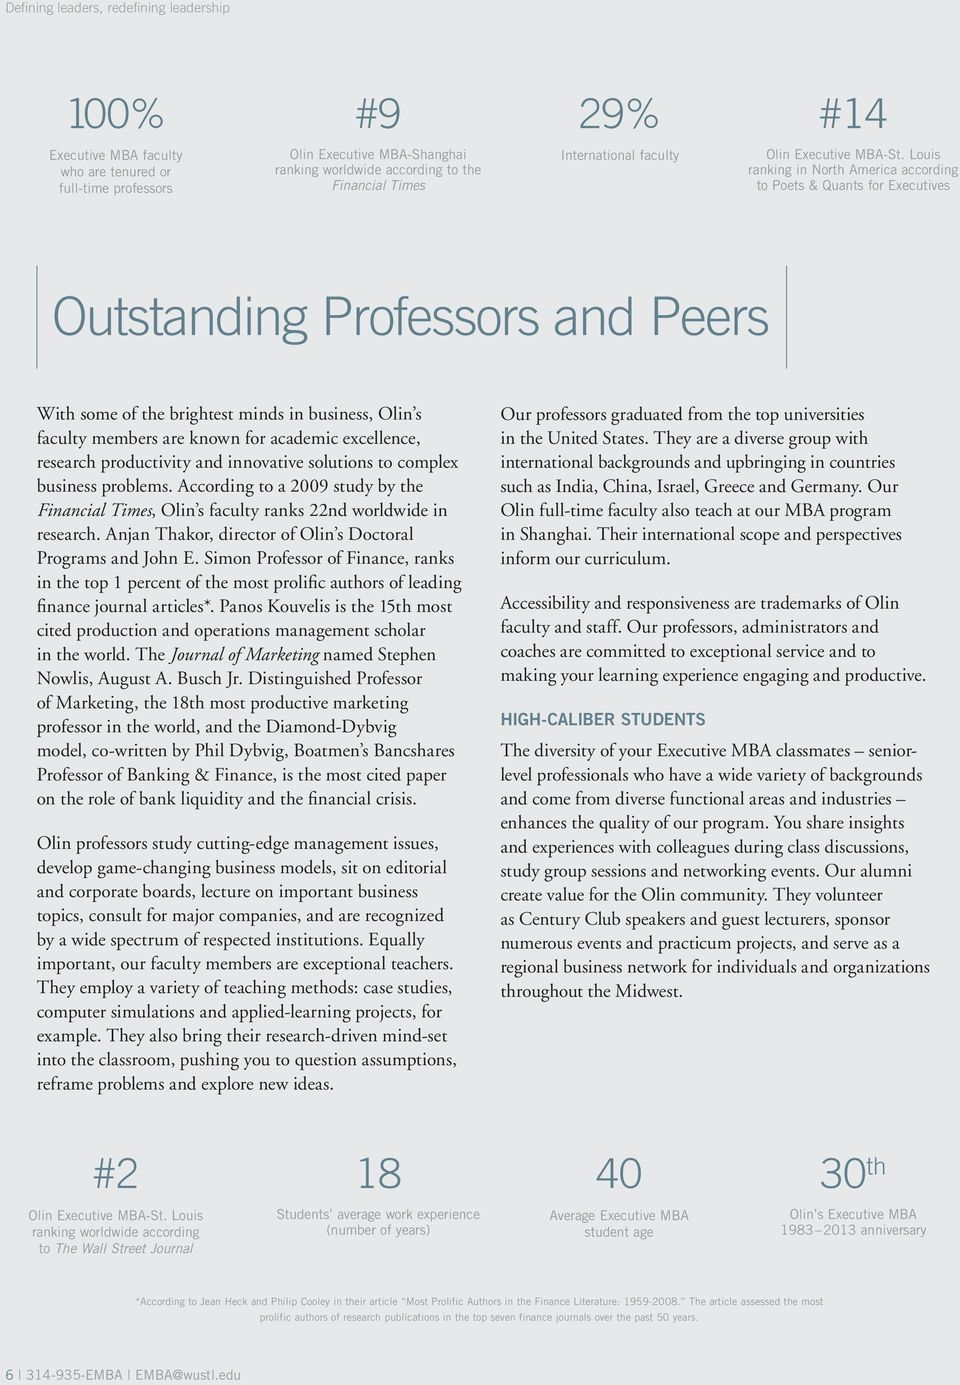 Louis ranking in North America according to Poets & Quants for Executives Outstanding Professors and Peers With some of the brightest minds in business, Olin s faculty members are known for academic